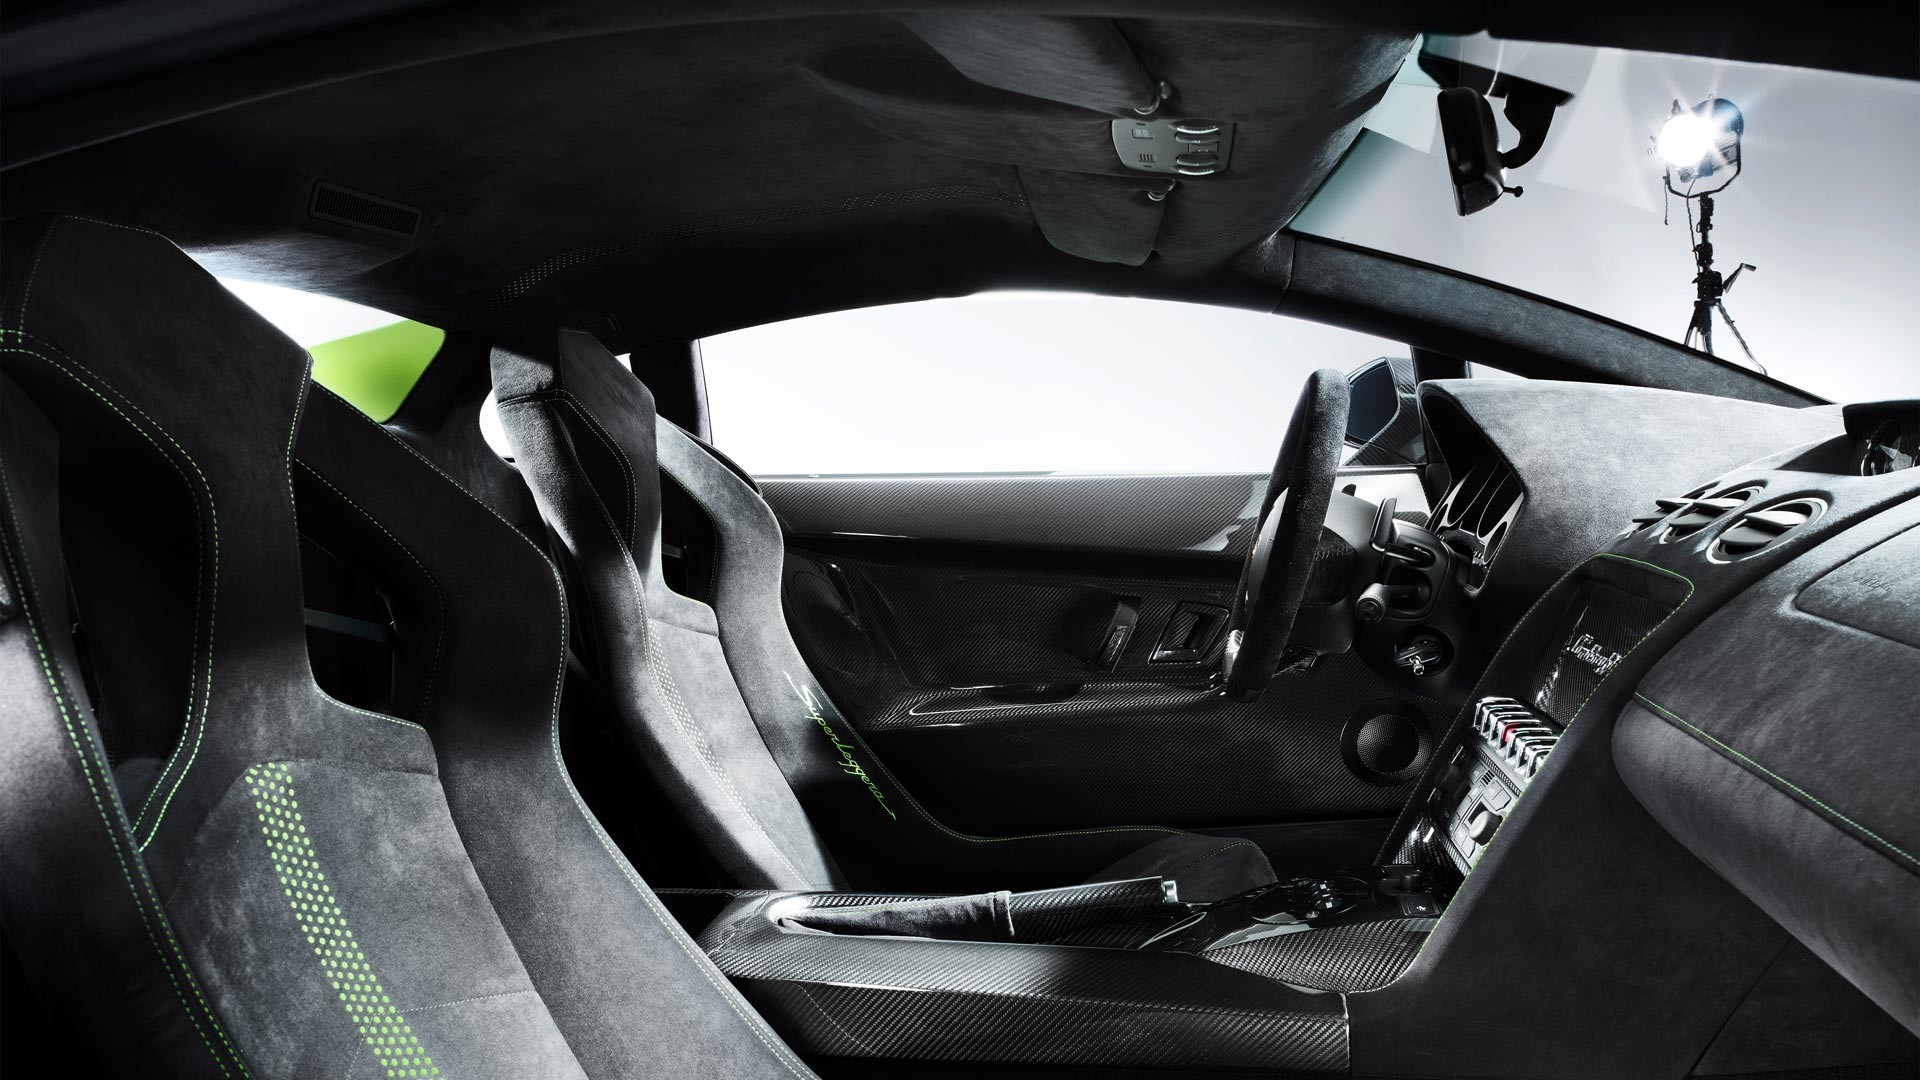 Lamborghini Gallardo Lp5704 Superleggera Car Interiors Wallpaper